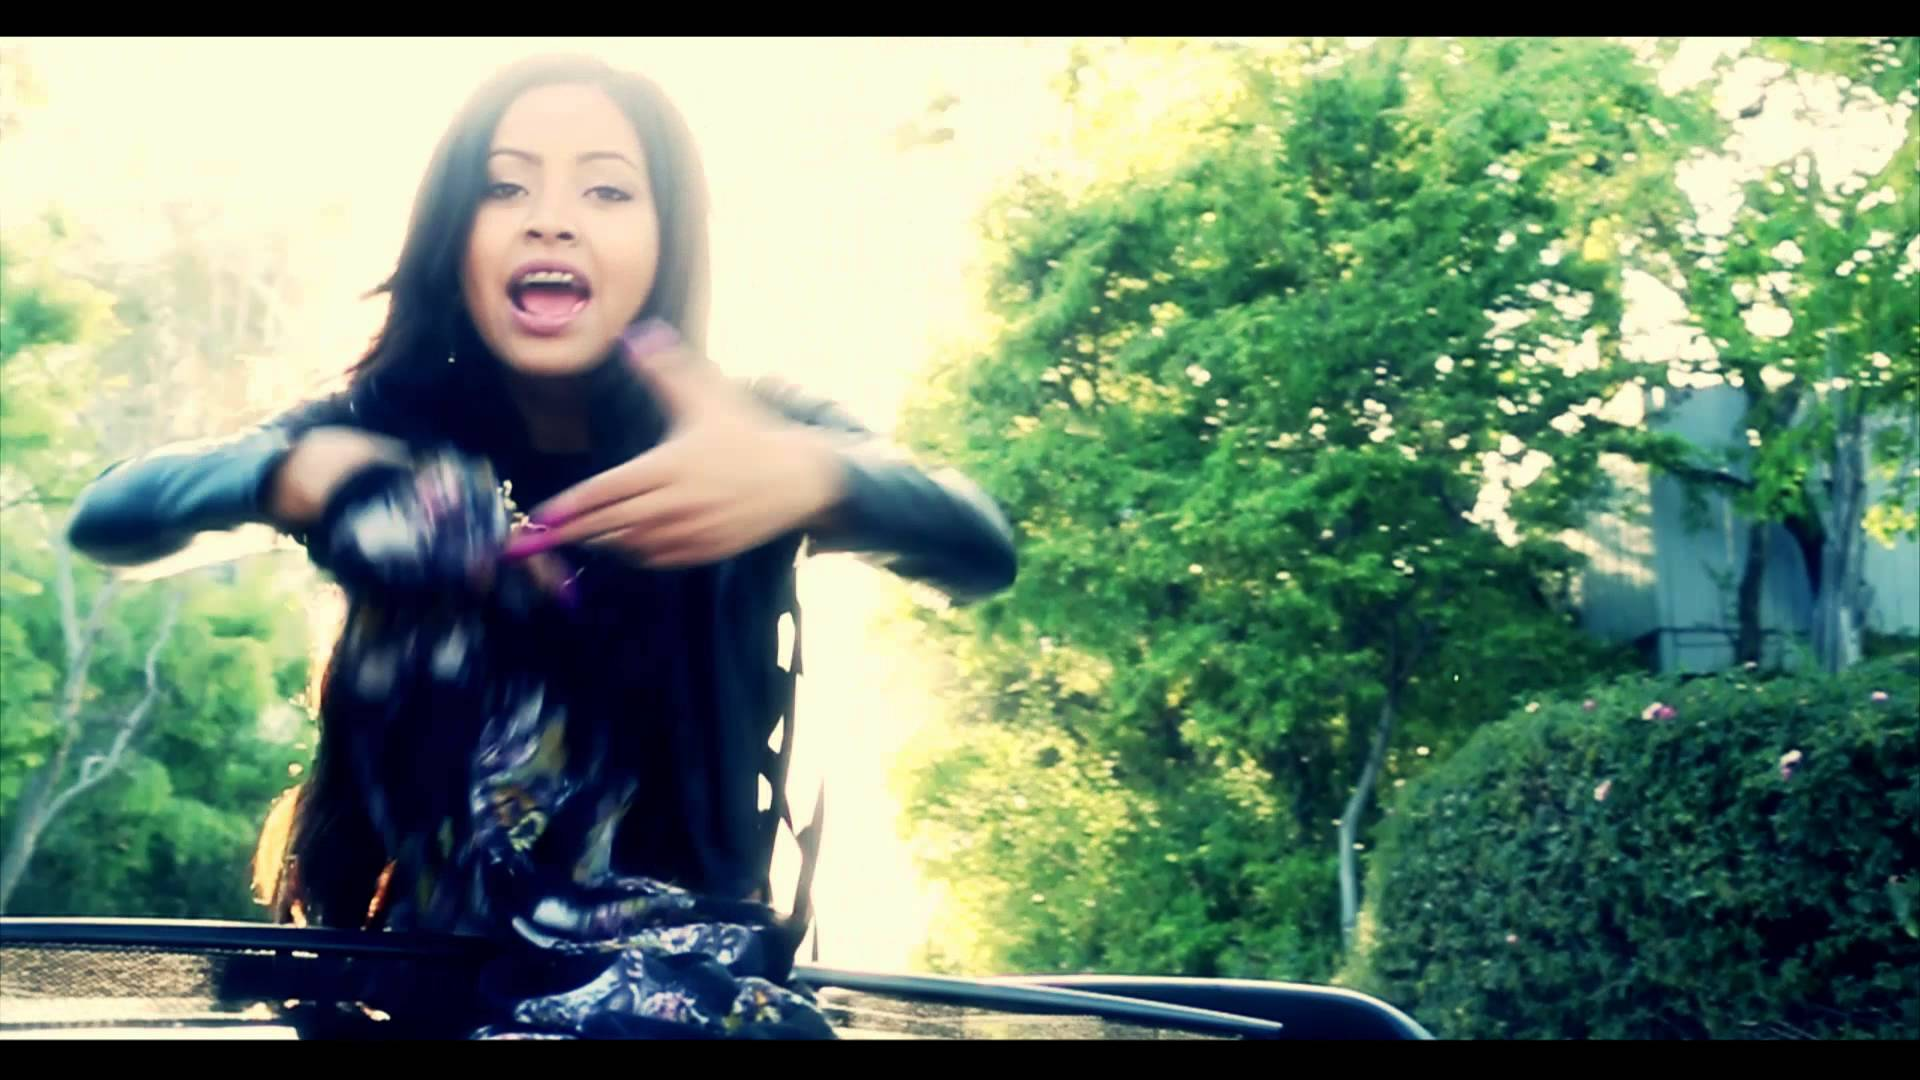 Honey Cocaine The Rapper Images Crazy Gallery 1920x1080